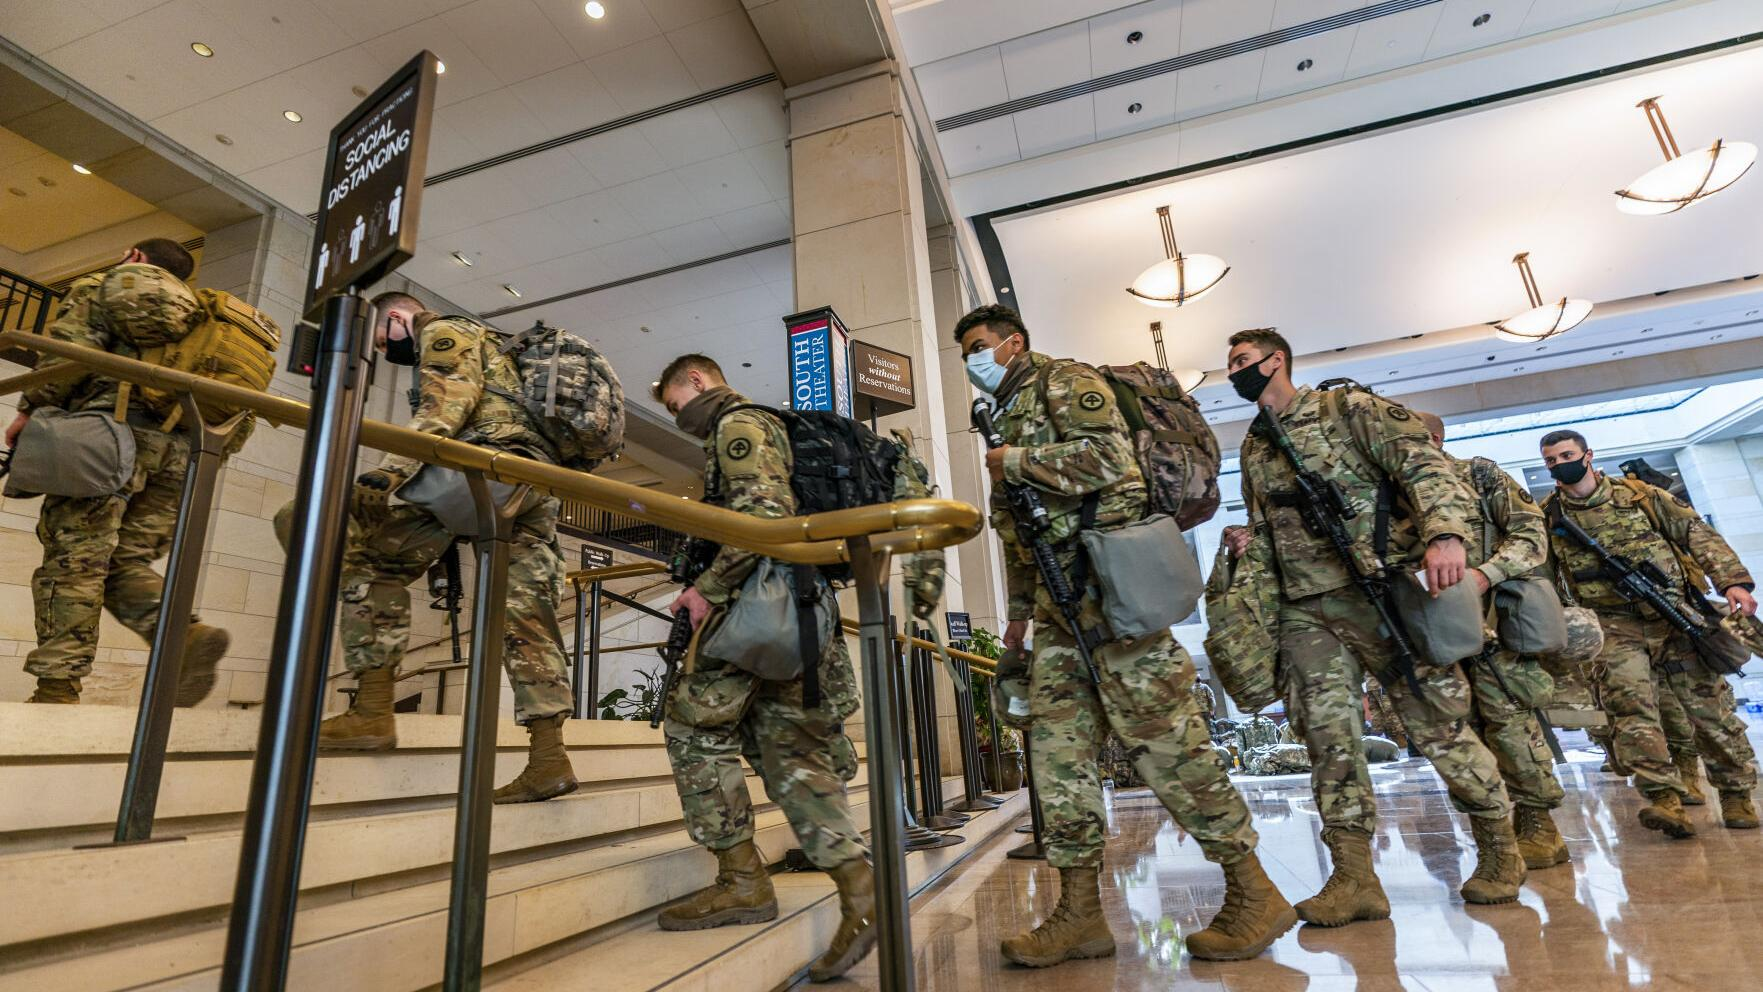 Impeachment scene: The graffiti is gone but troops fill Capitol hallways